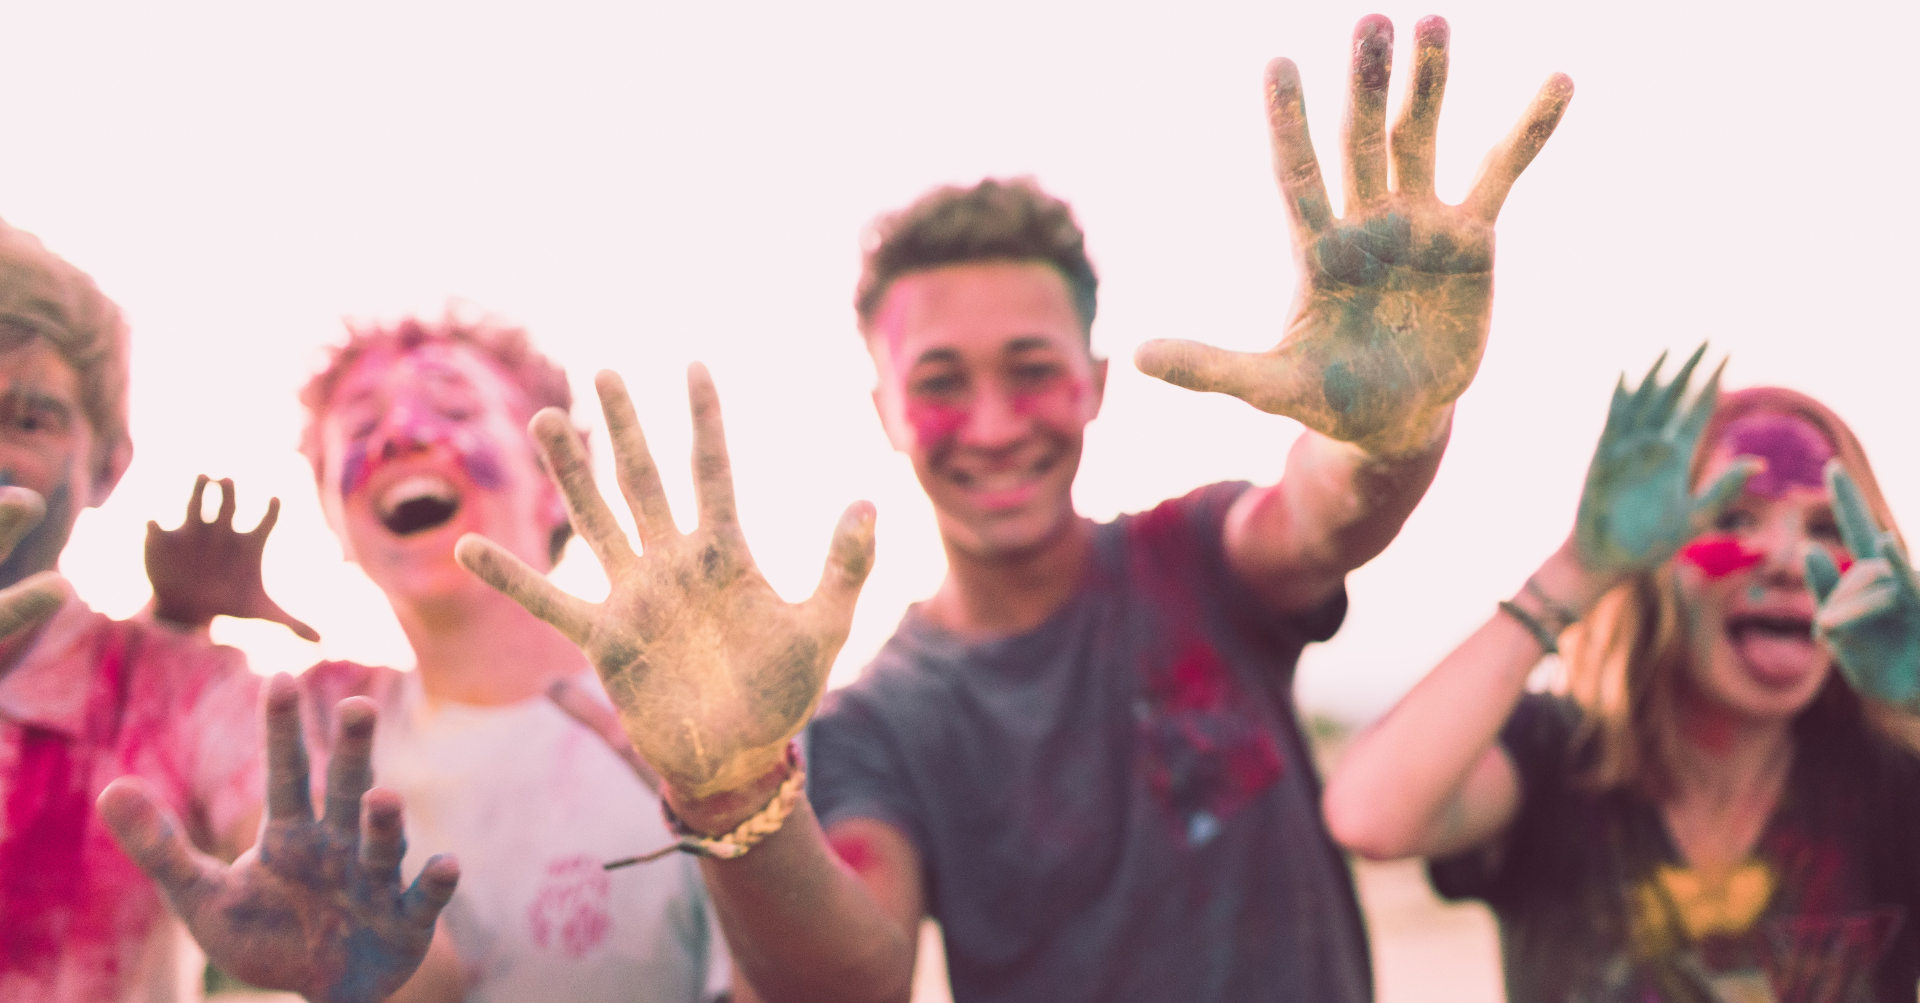 7 Principles Your Gen Z Kids Need to Navigate Their Confusing World